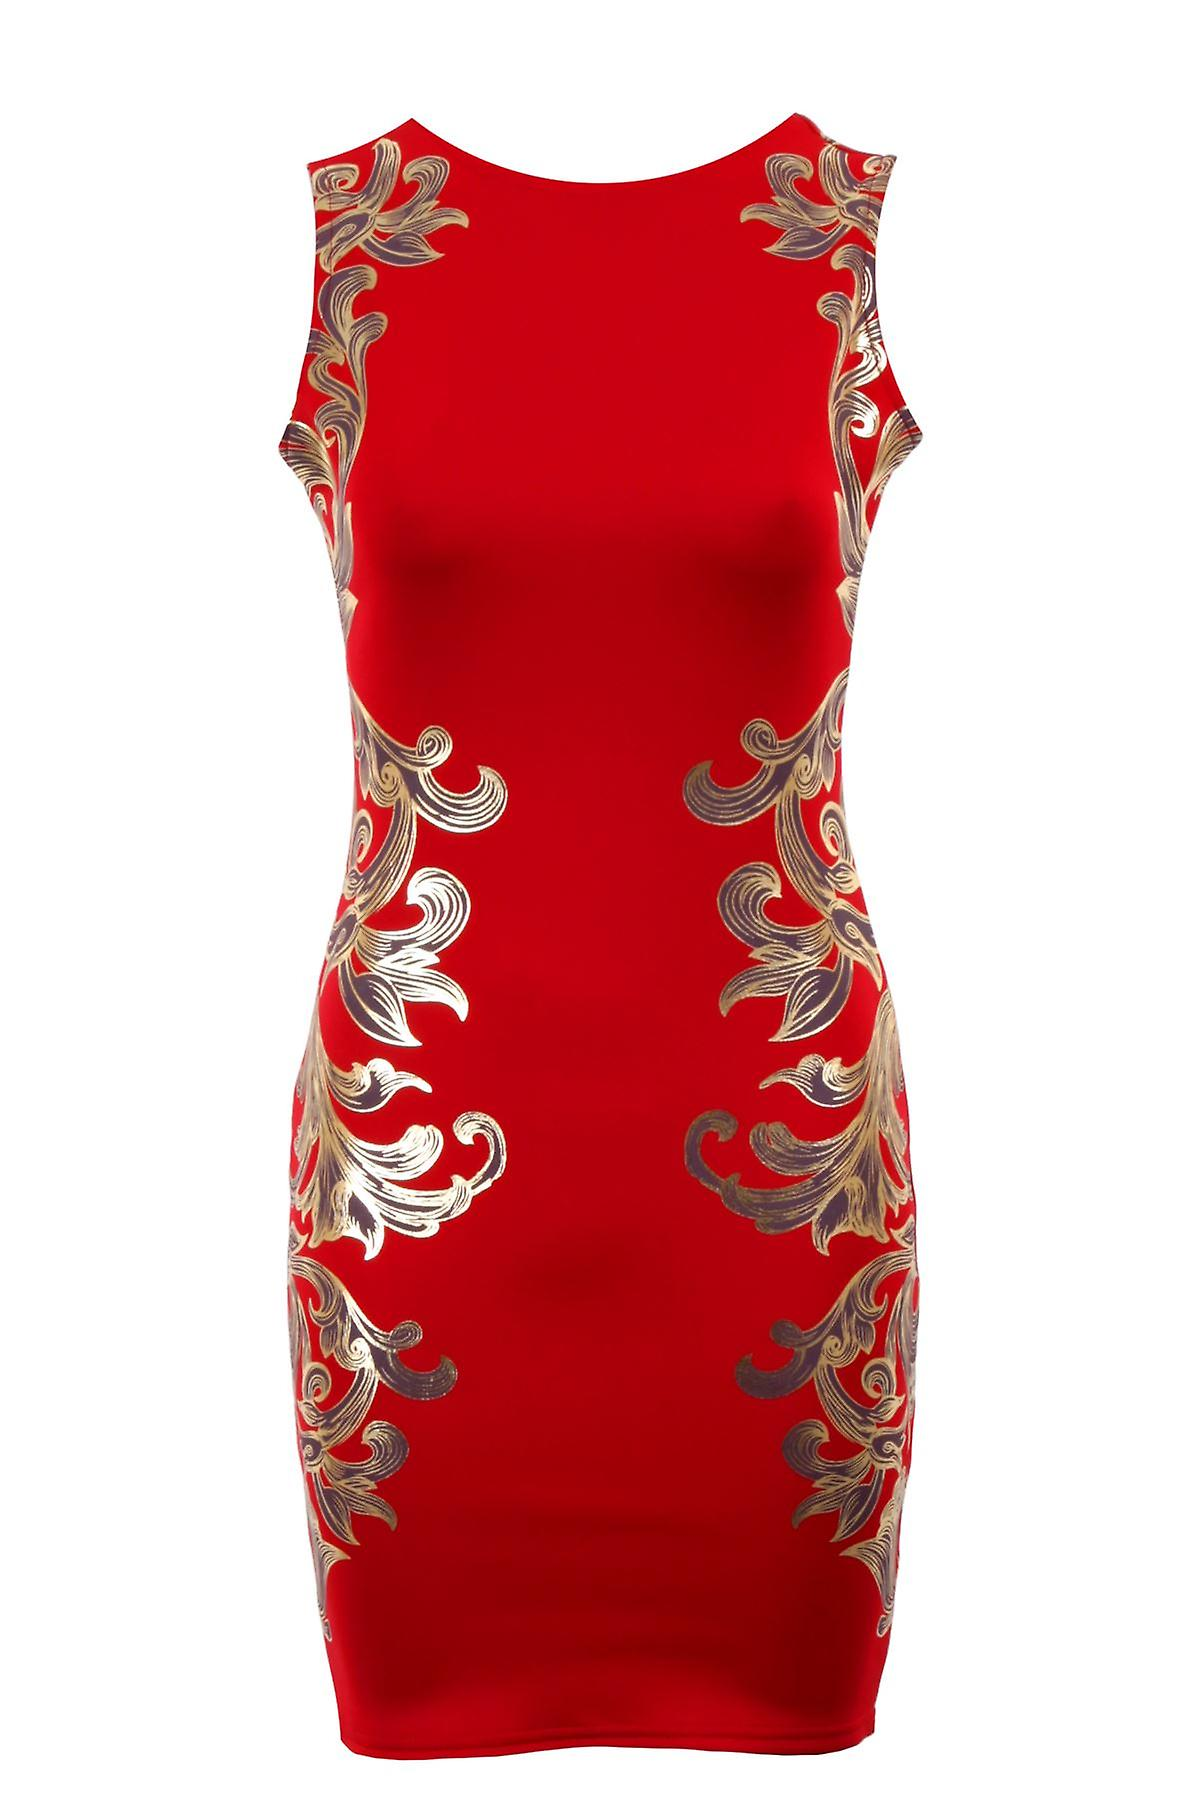 Ladies Gold Floral Embossed Leaf Print Bodycon Low Back Zip Women's Party Dress